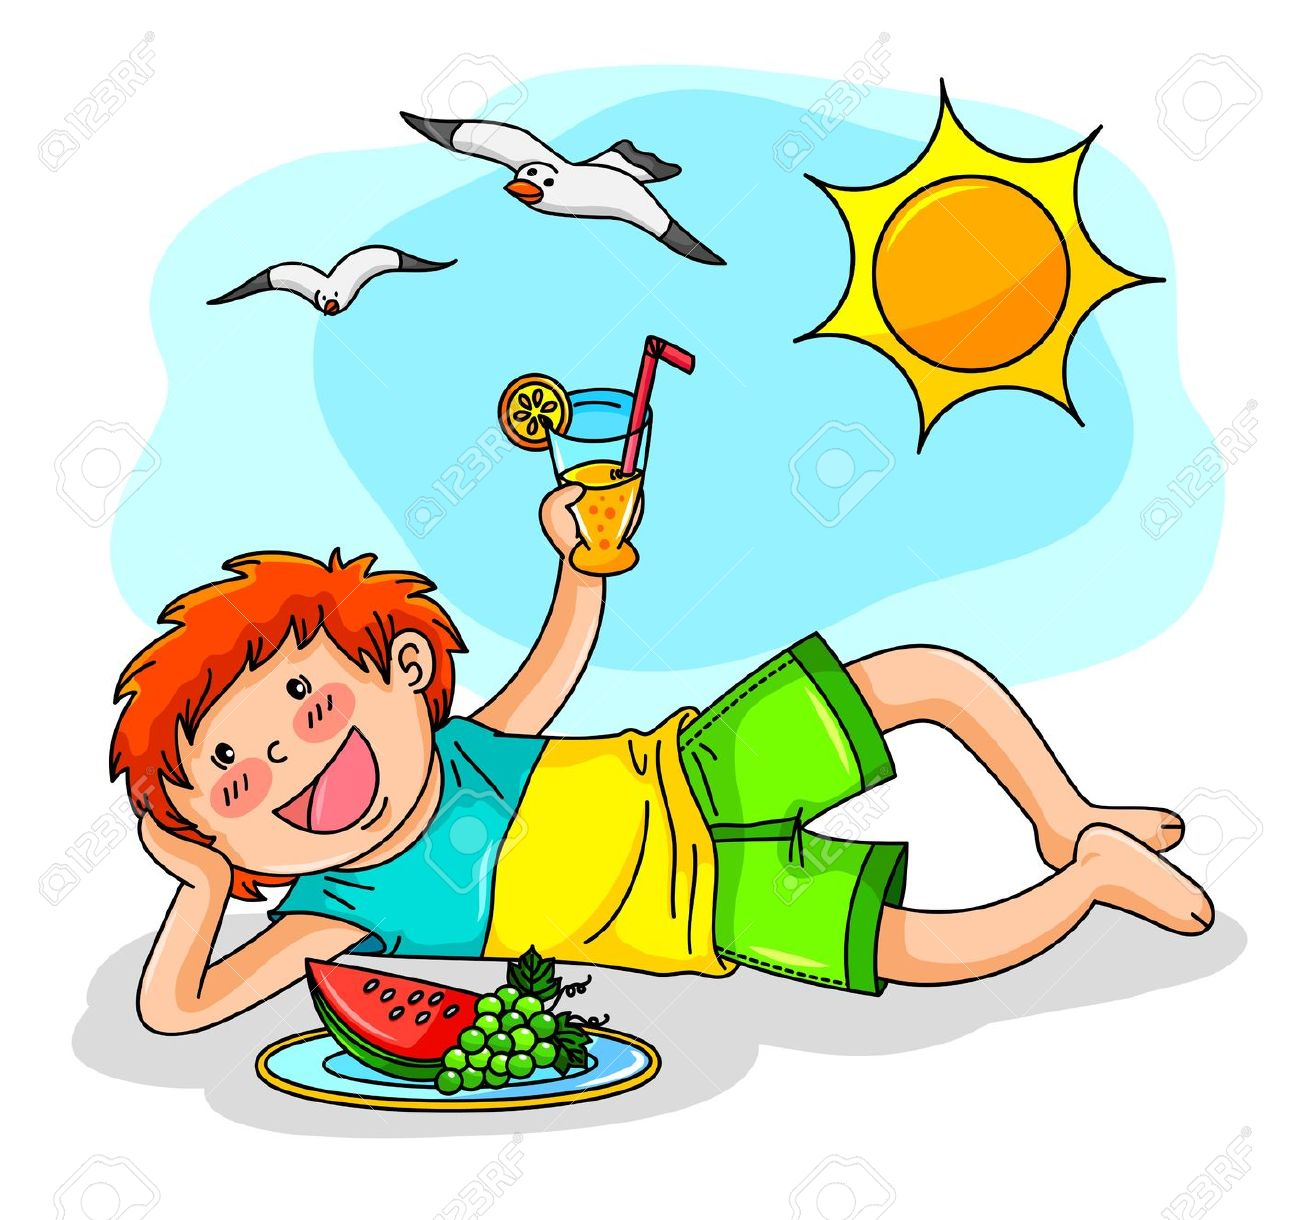 Summer weather clipart - Clipground